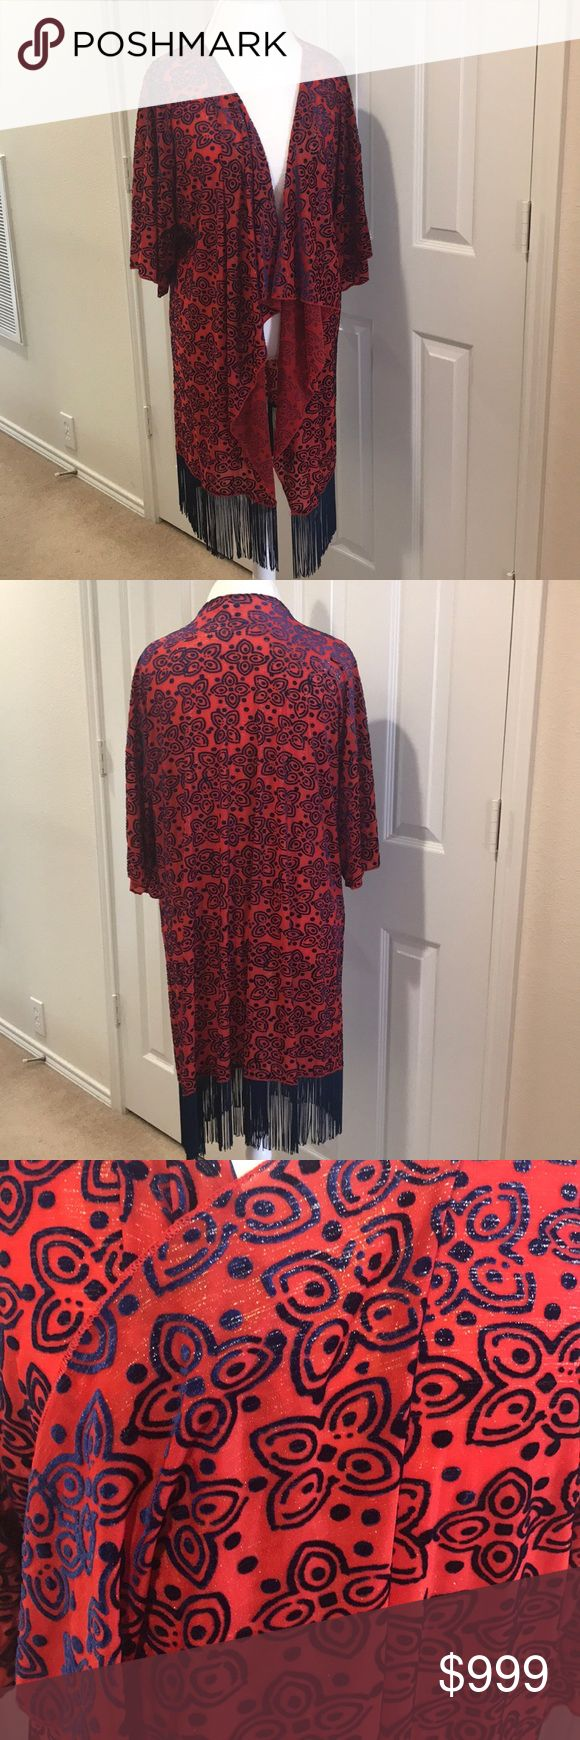 🆕LuLaRoe Elegant Collection Monroe Kimono Size L 🎉REPOSH🎉This stunning red semi-sheer polyester kimono is flocked in two-tone navy/royal blue velvet. The shimmery gold threads that glitter with every movement really elevate this Monroe from the Elegant Collection to holiday-party status! This is a retired style! Tops